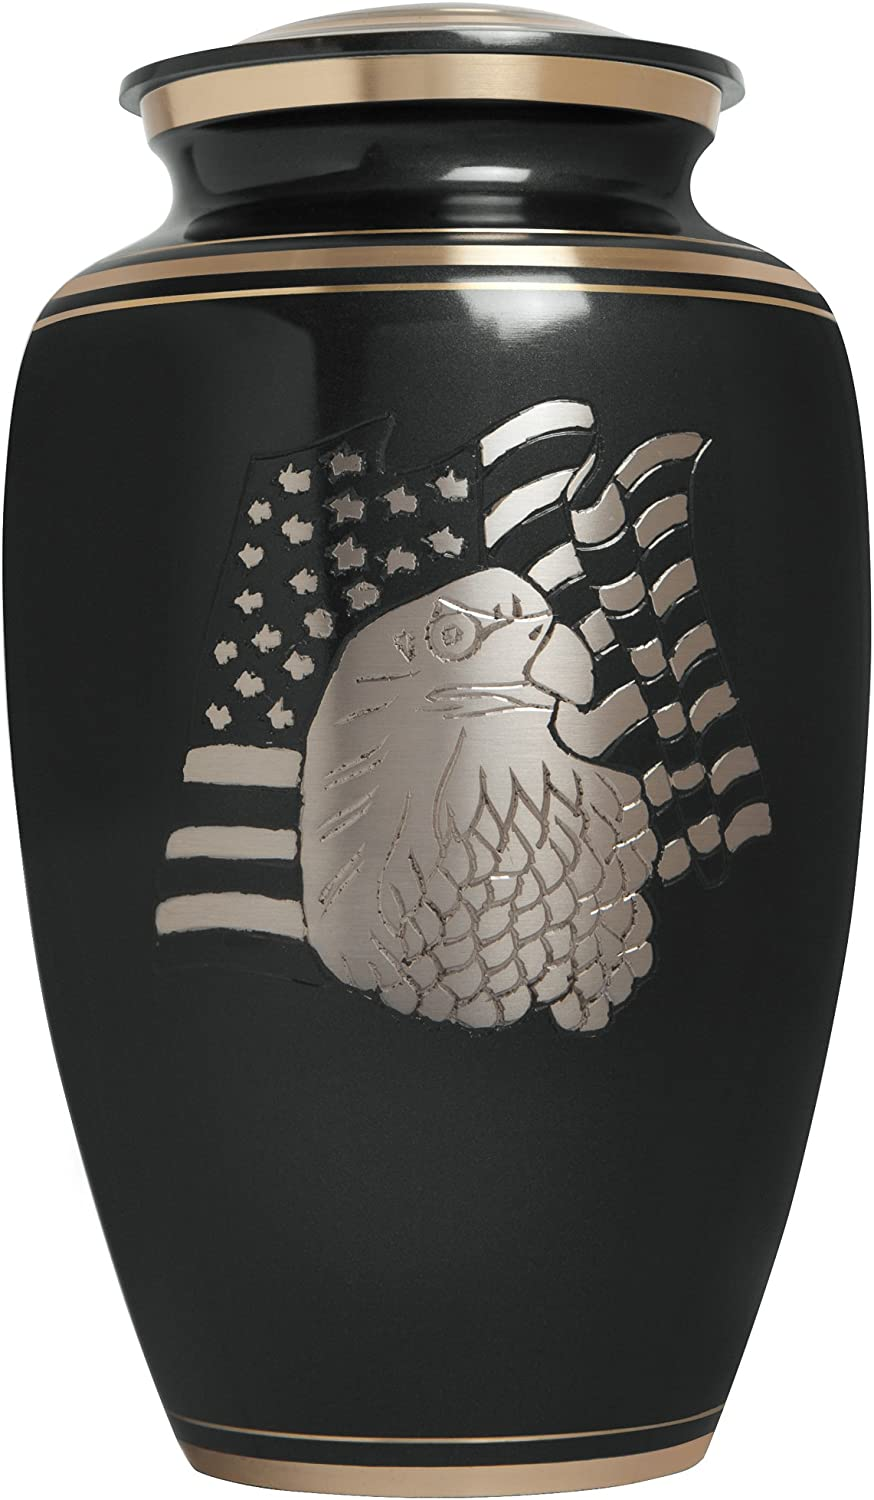 Black Funeral Urn by Topics on TV Liliane Memorials- for Ranking TOP11 Human Cremation